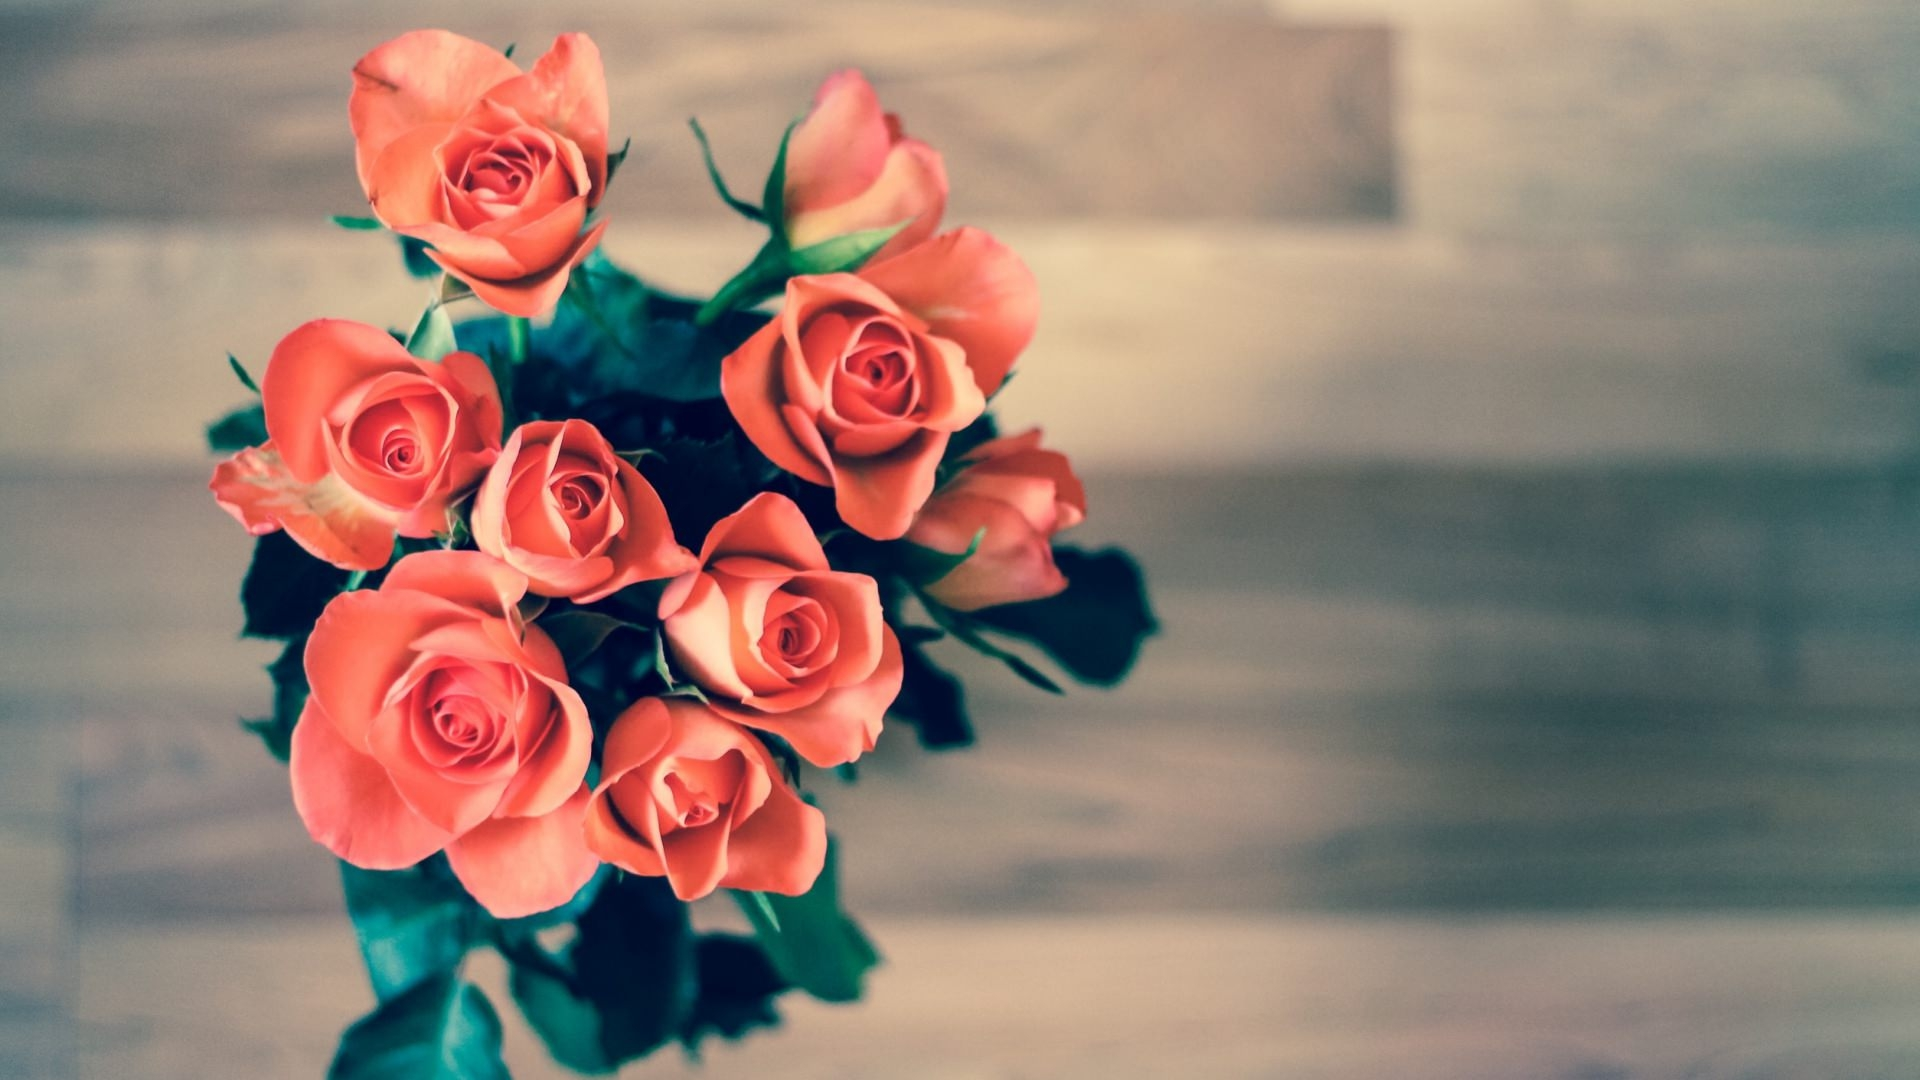 Awesome Rose Bouquet Wallpaper